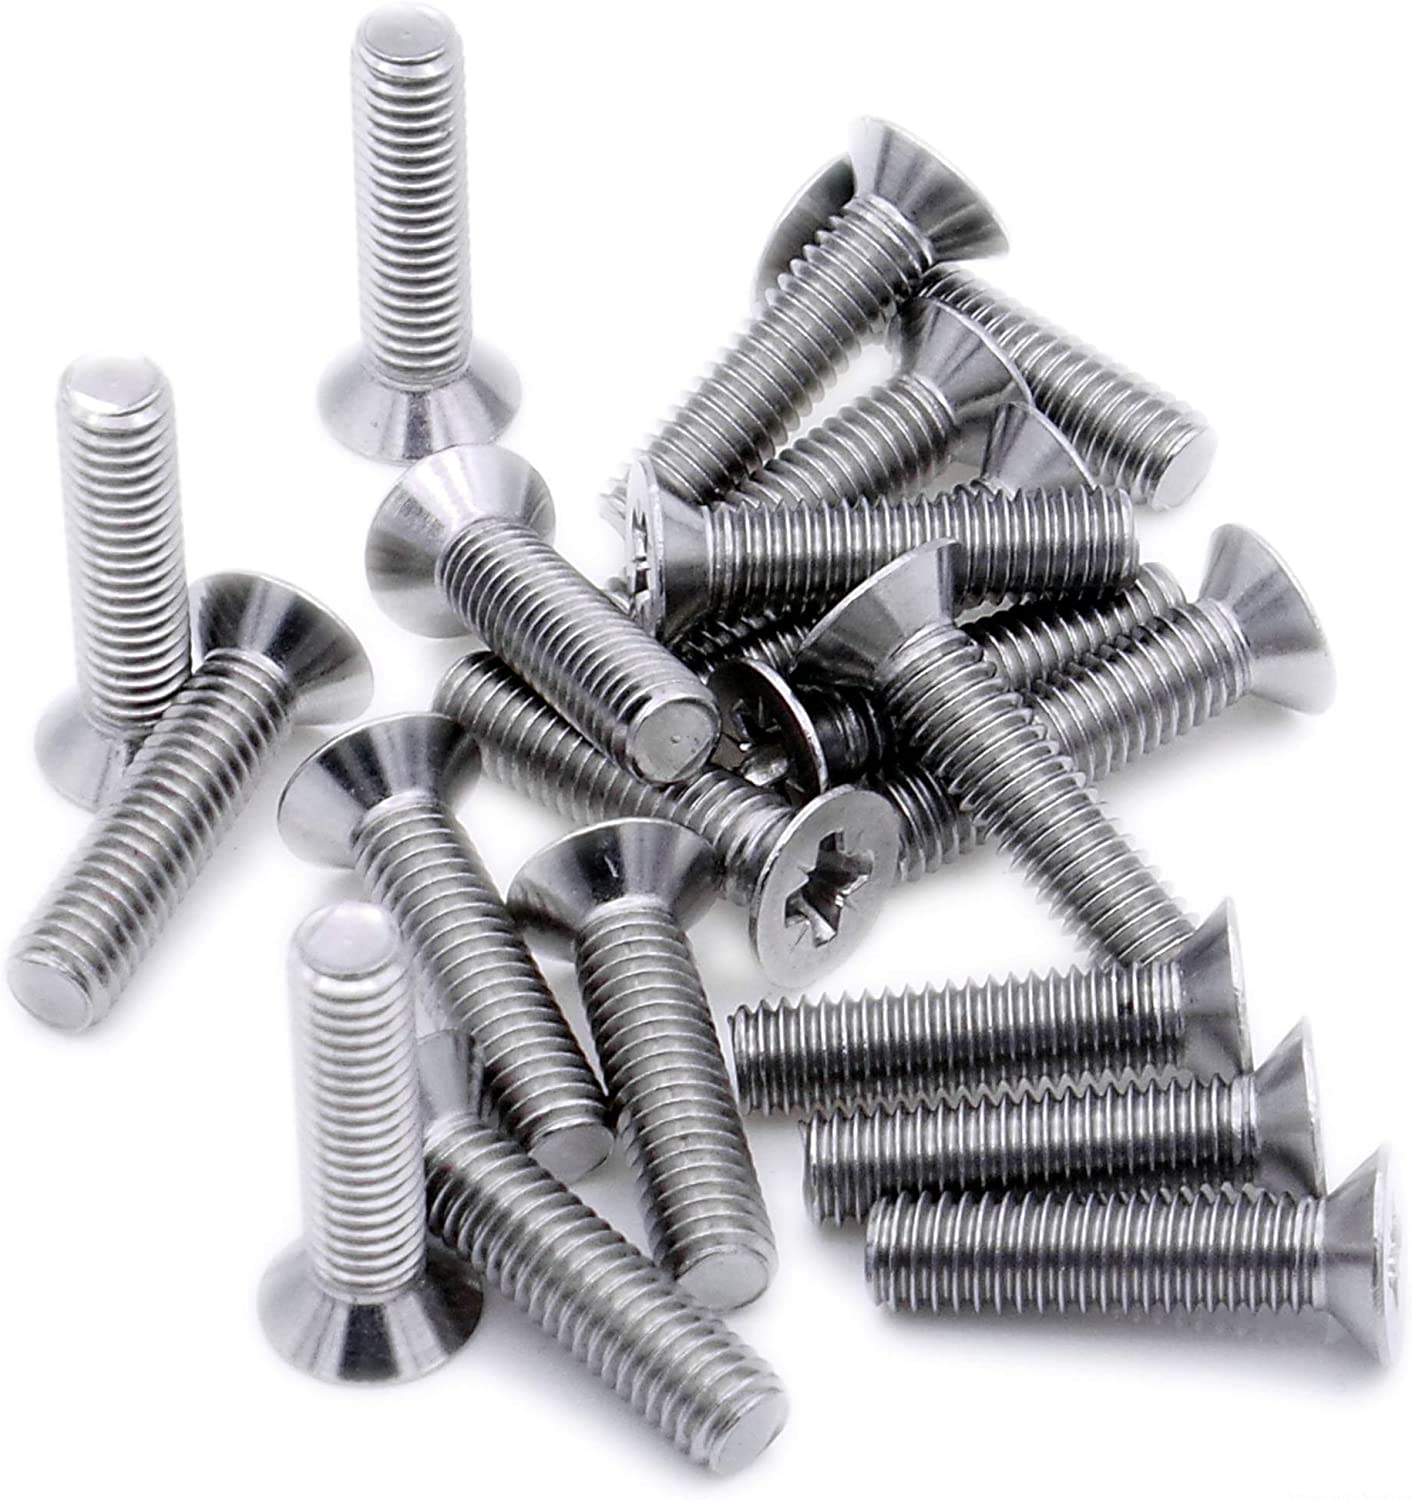 Pack of 100 Machine Screws//Bolts A2 Stainless Steel Pozi Pan Head Mch Screw M3 3mm x 6mm